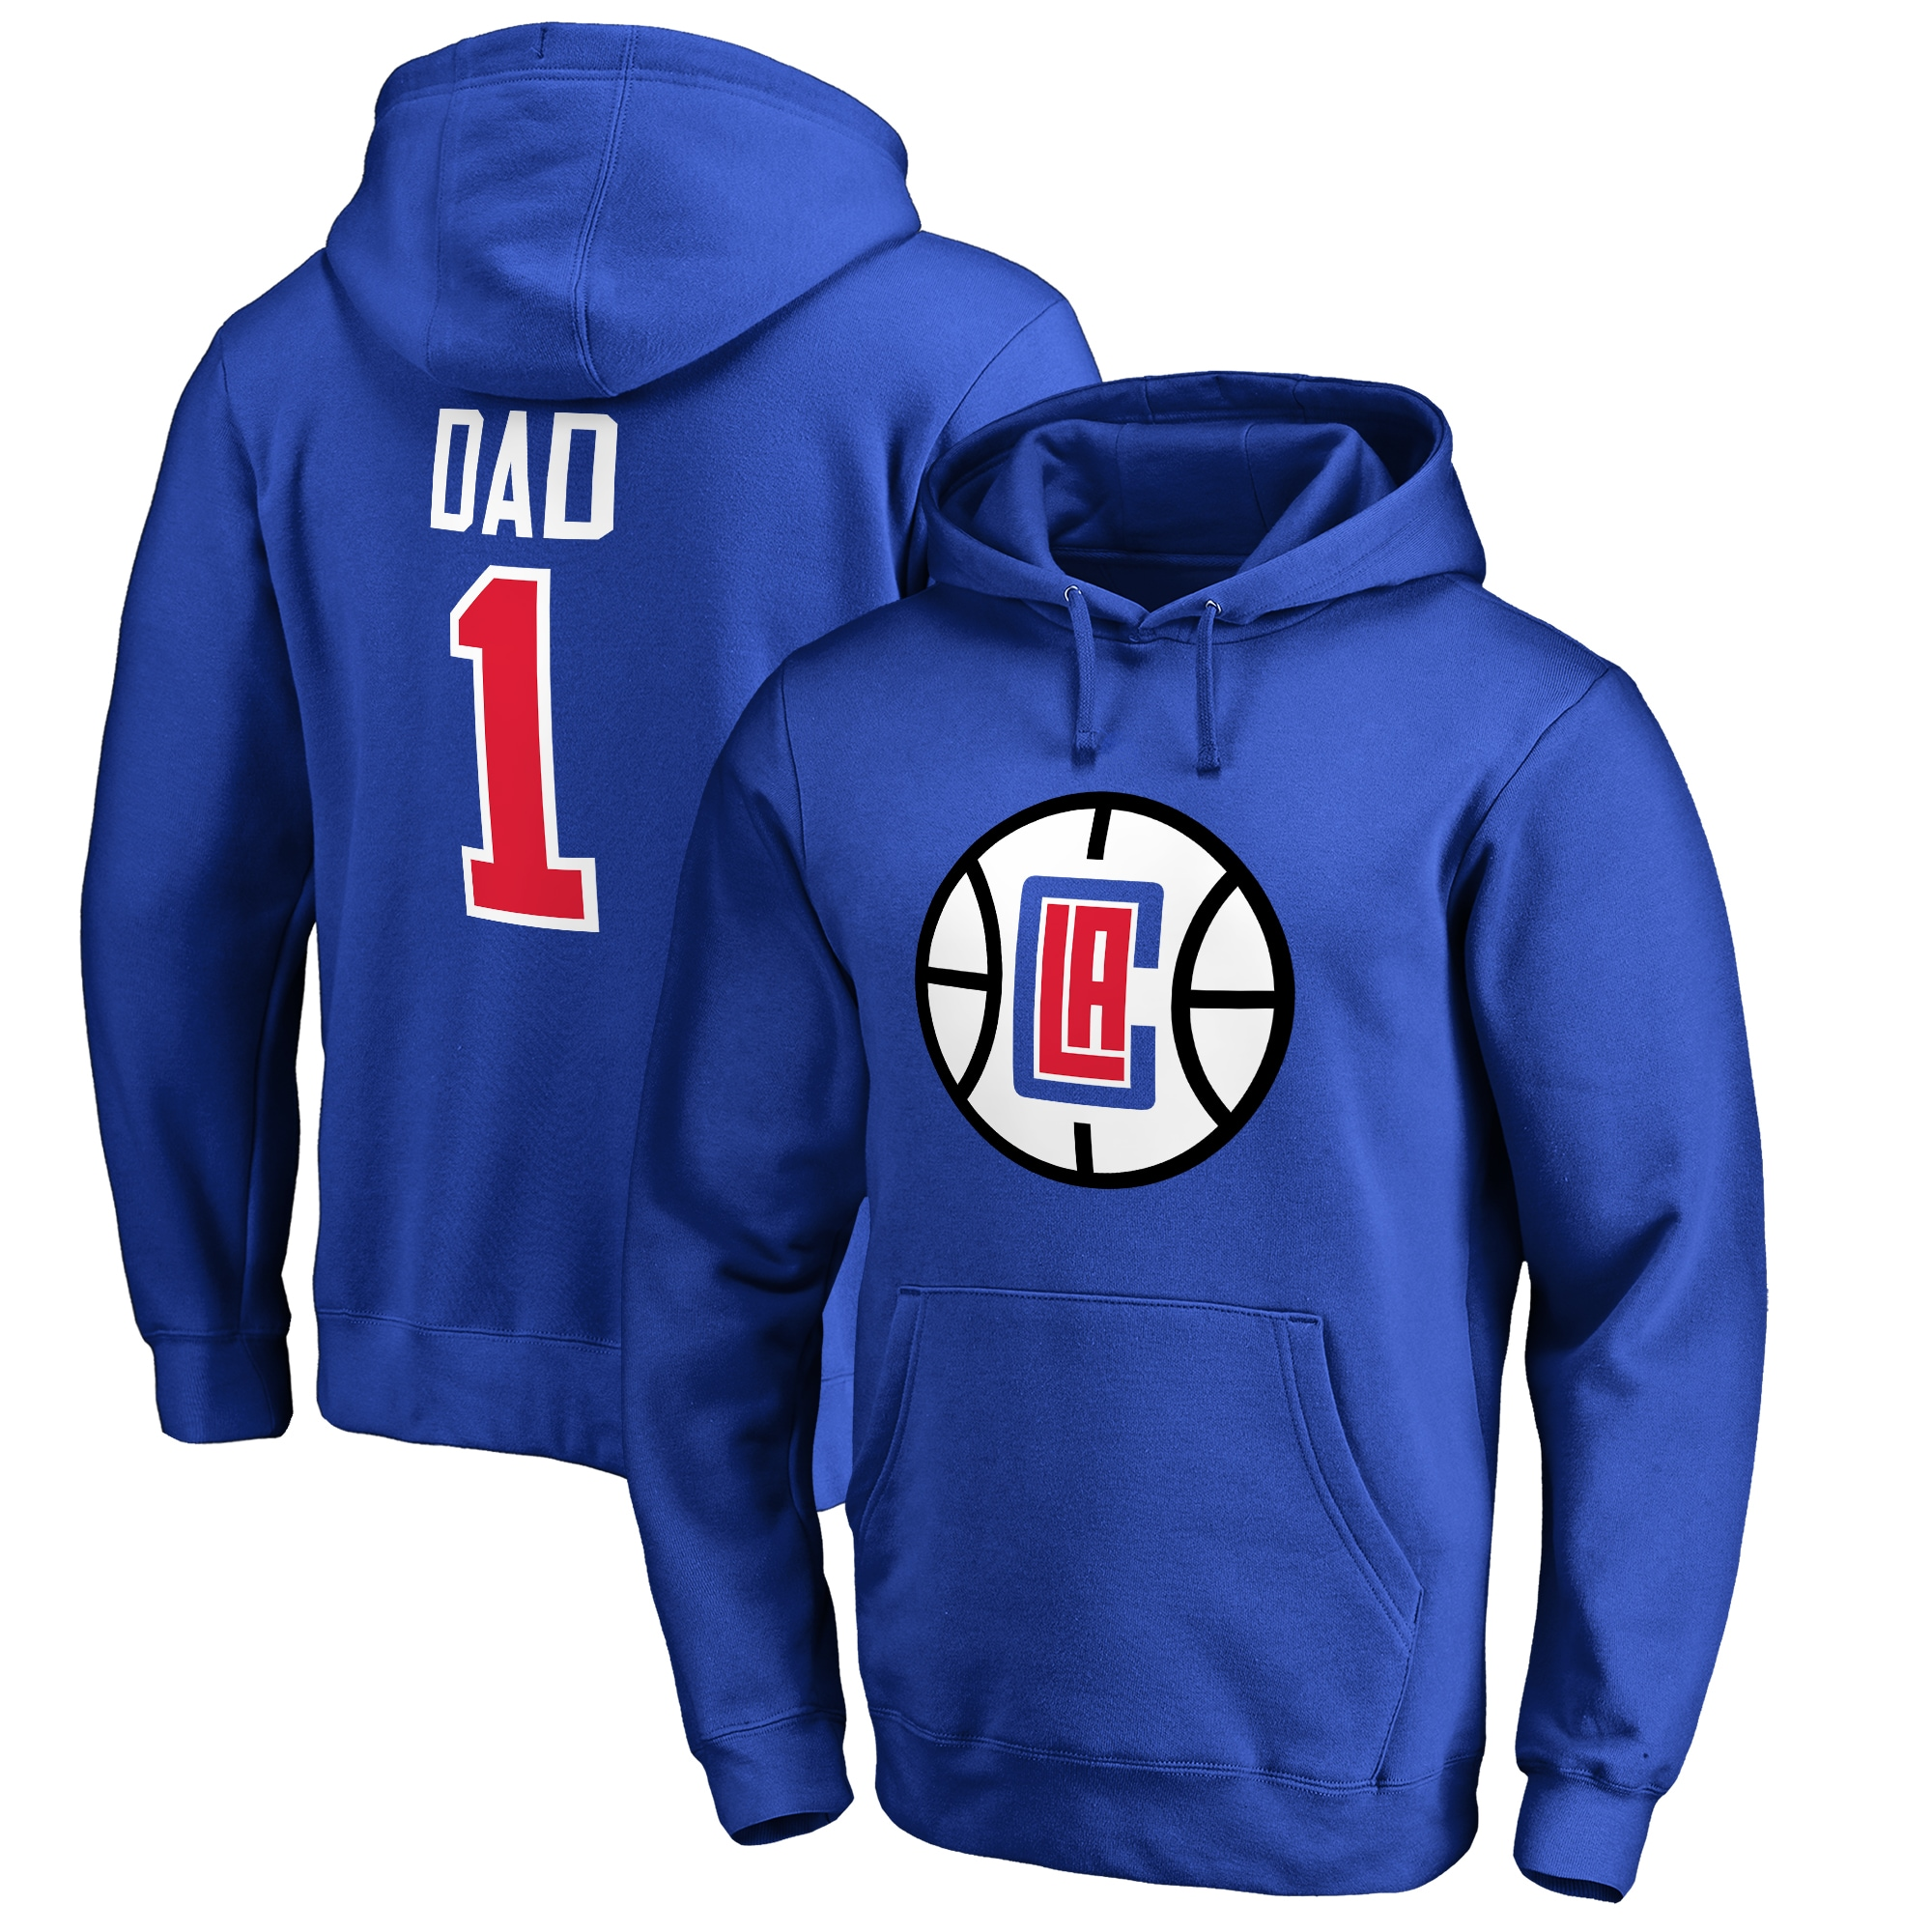 LA Clippers #1 Dad Pullover Hoodie - Royal